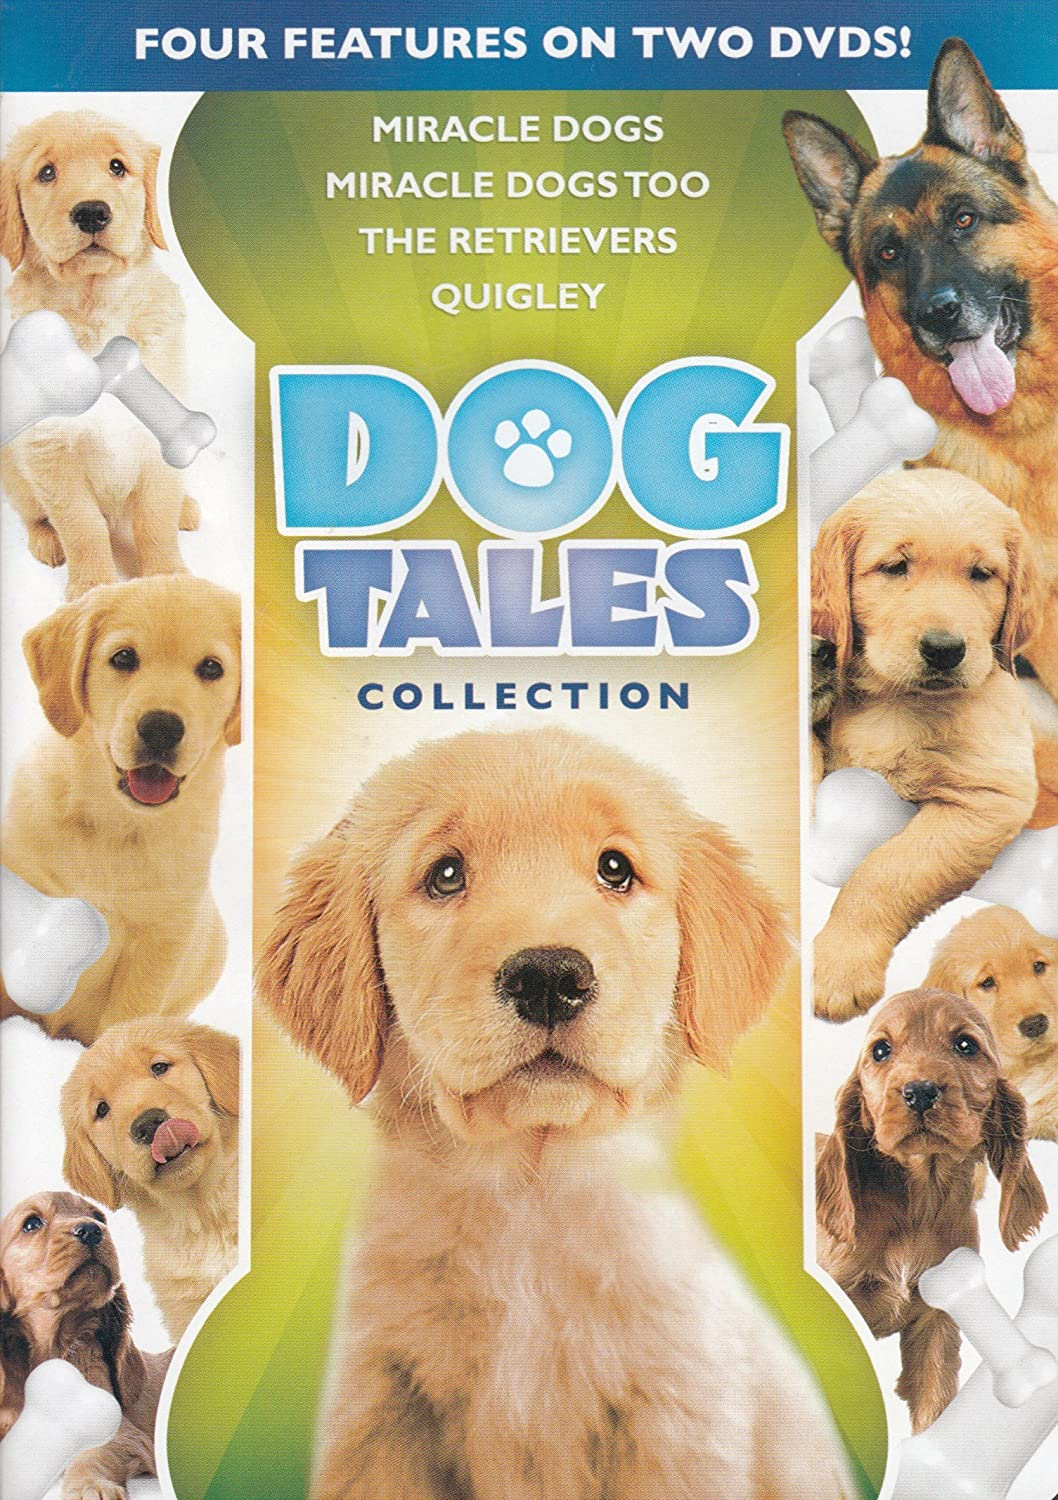 Dog Tales Collection (Miracle Dogs, Miracle Dogs Too, The Retrievers, Quigley)